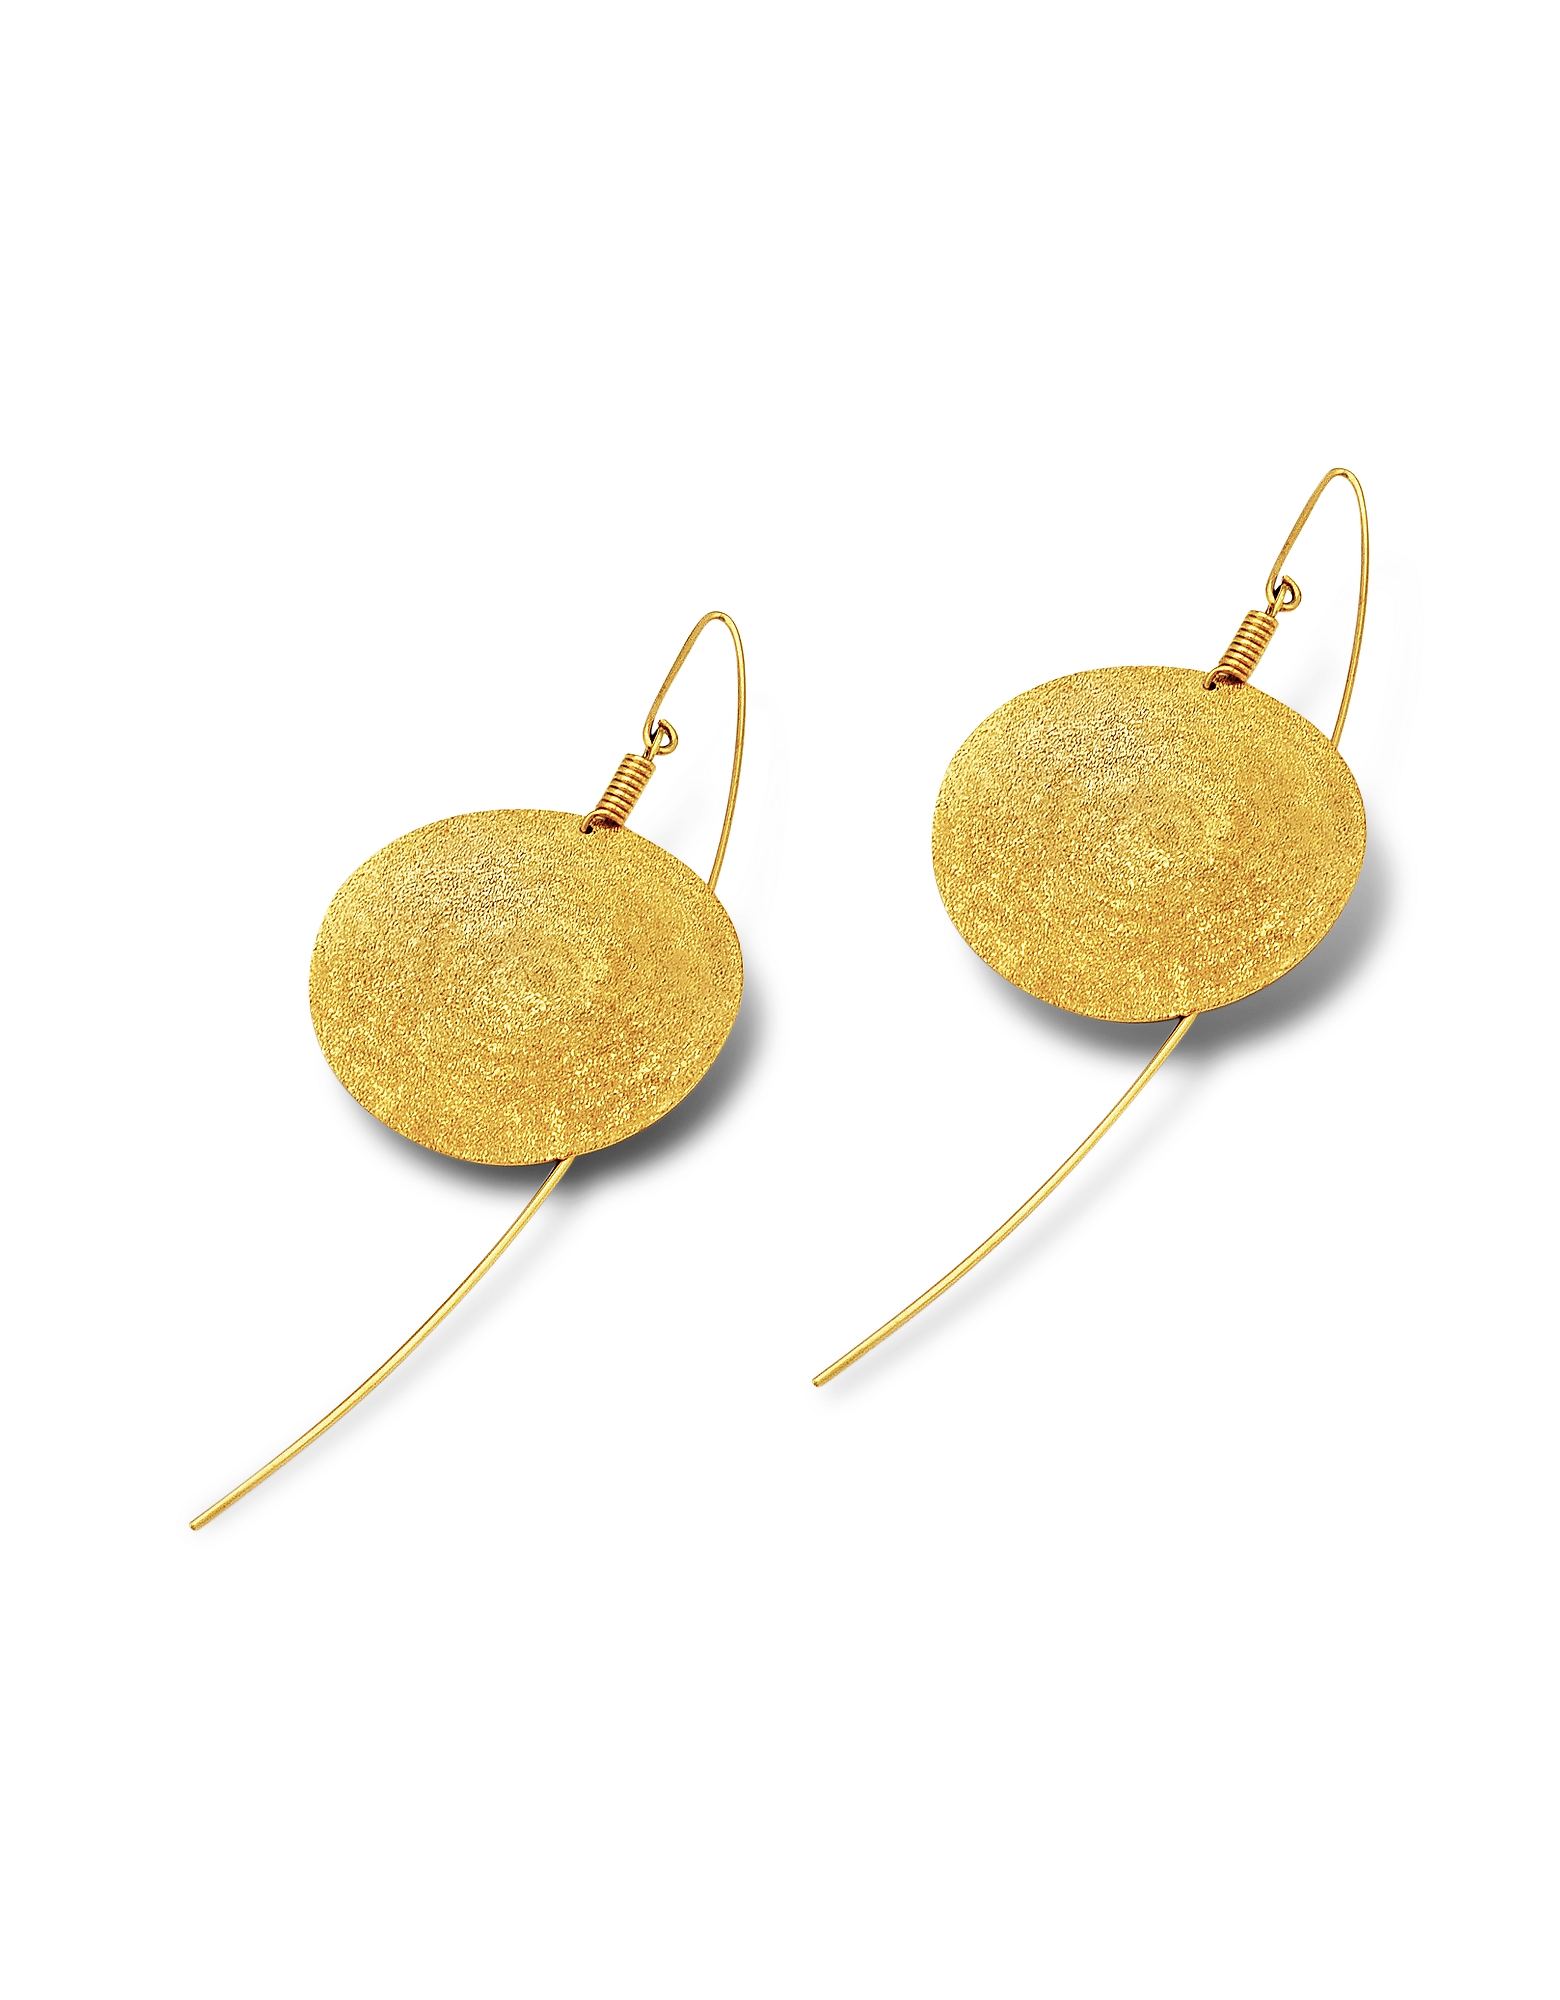 Stefano Patriarchi Earrings, Golden Silver Etched Round Drop Earrings